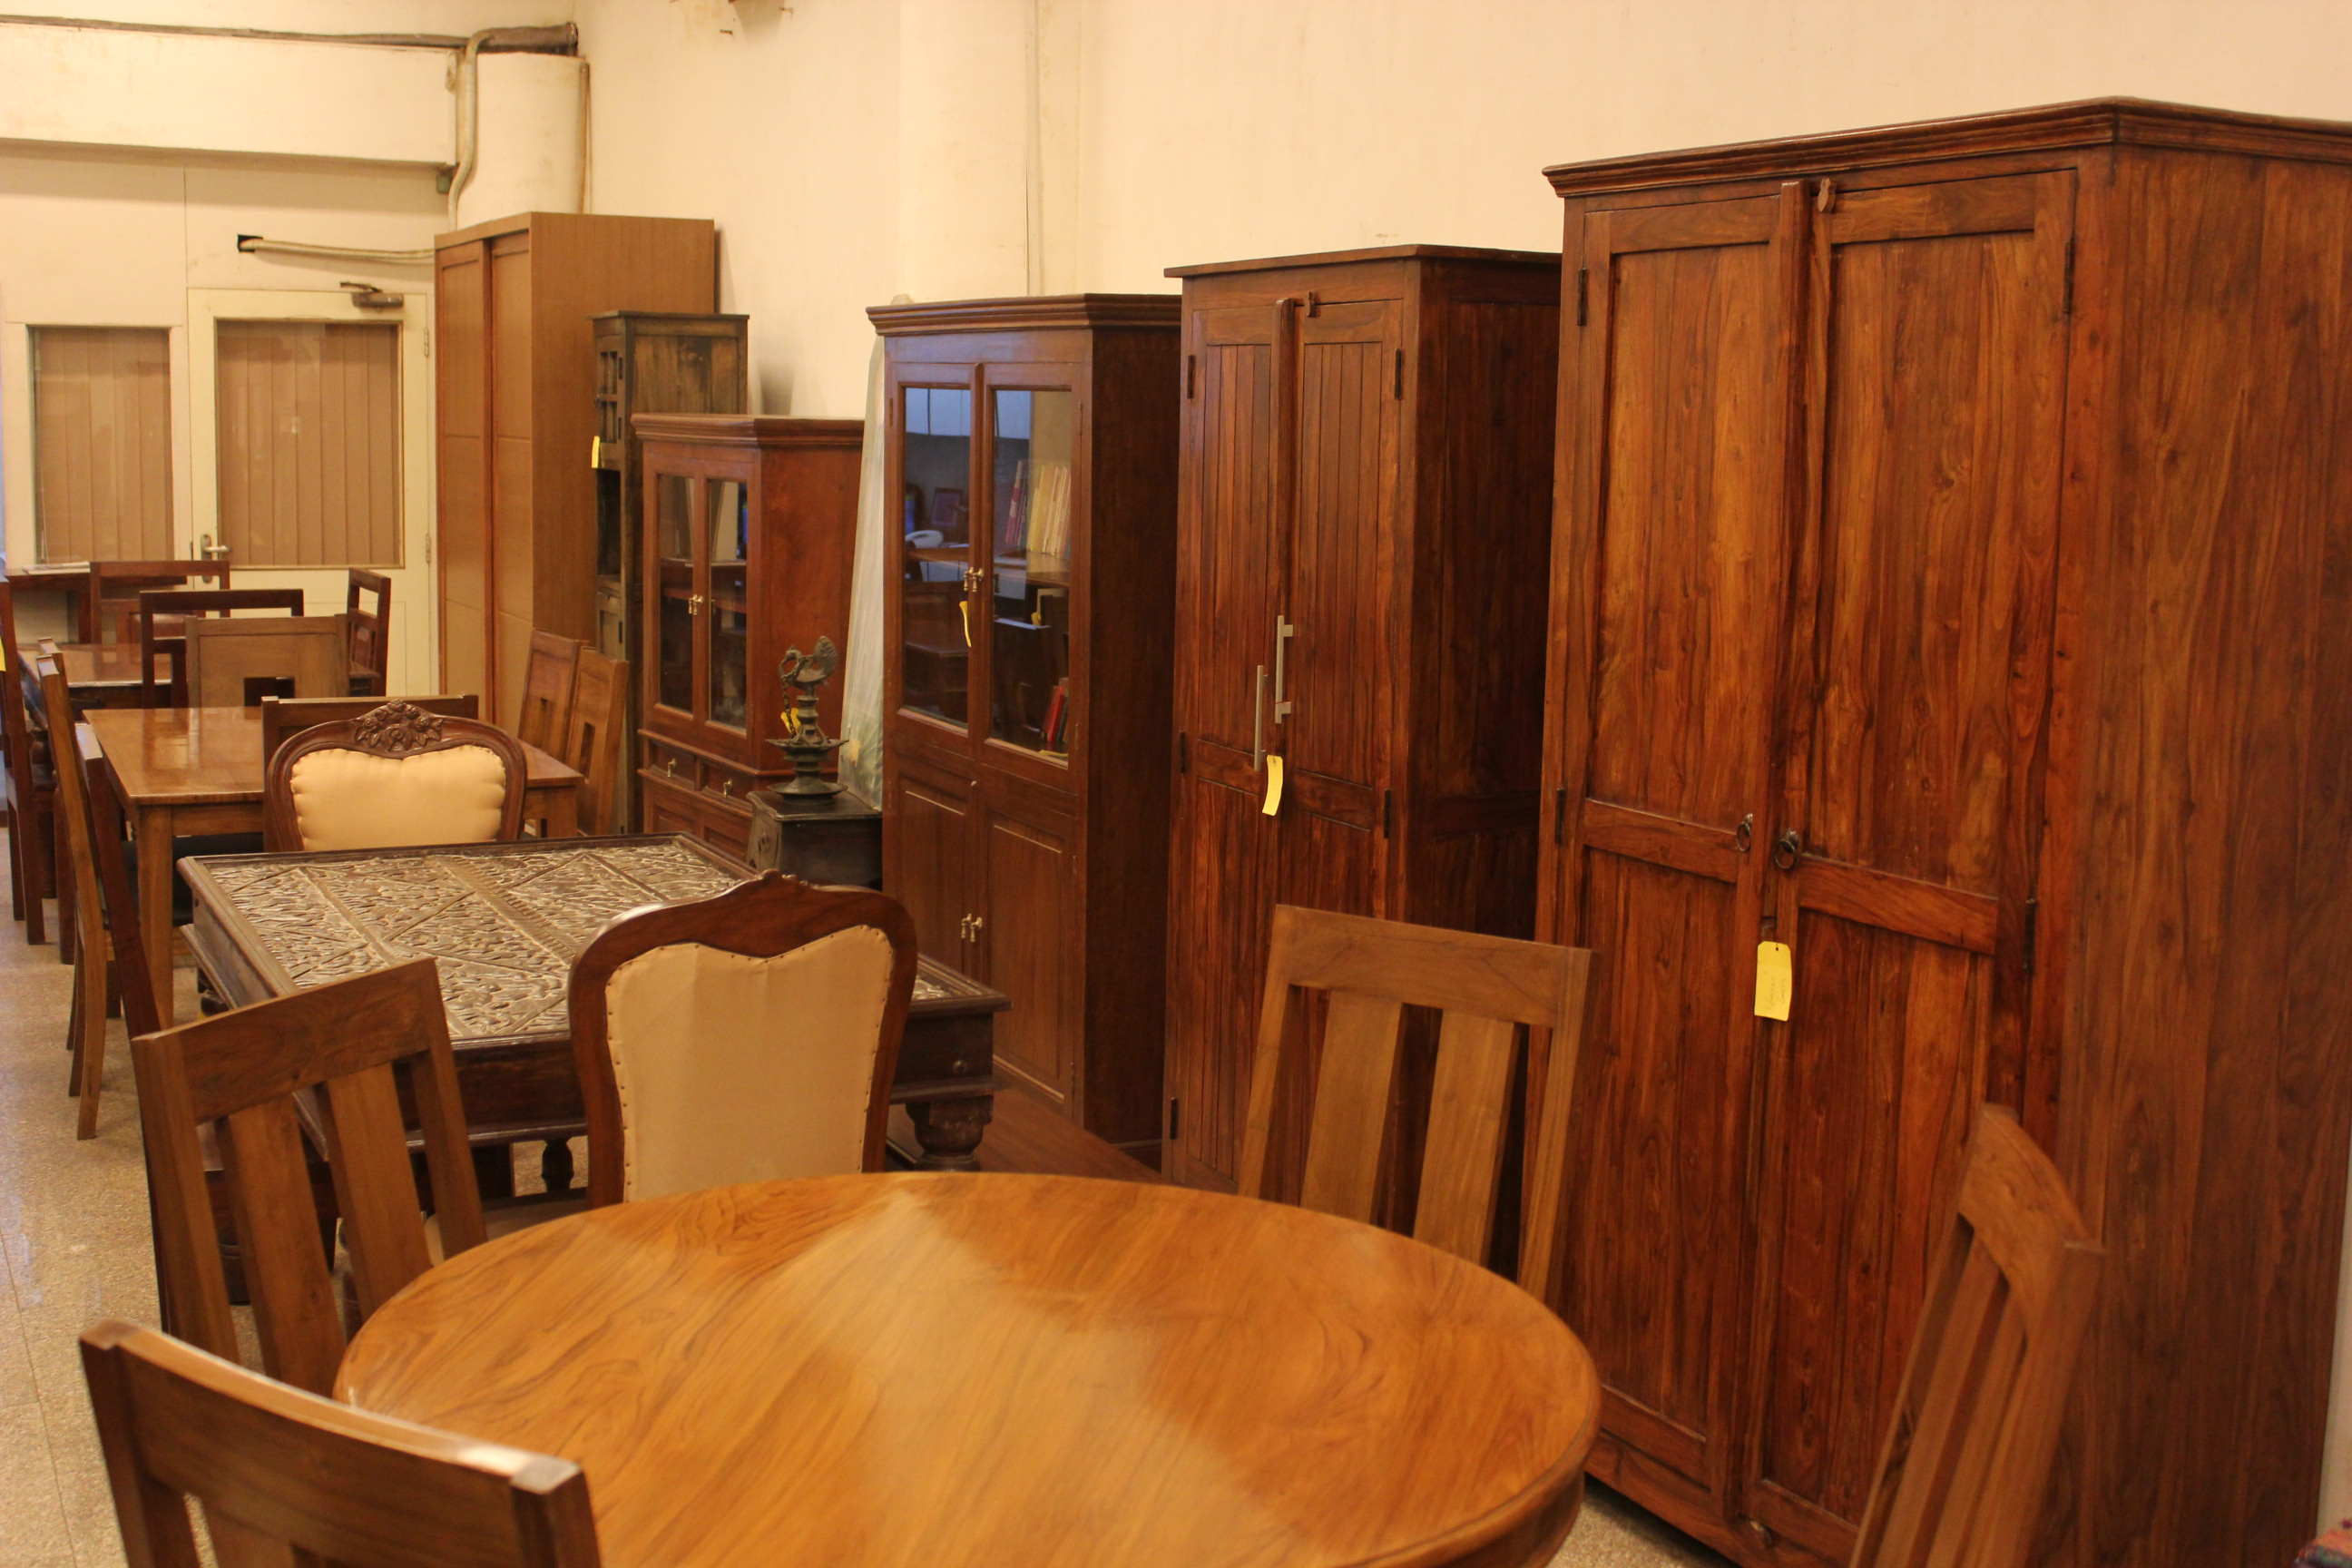 Sheesham Wood Furniture Nasik